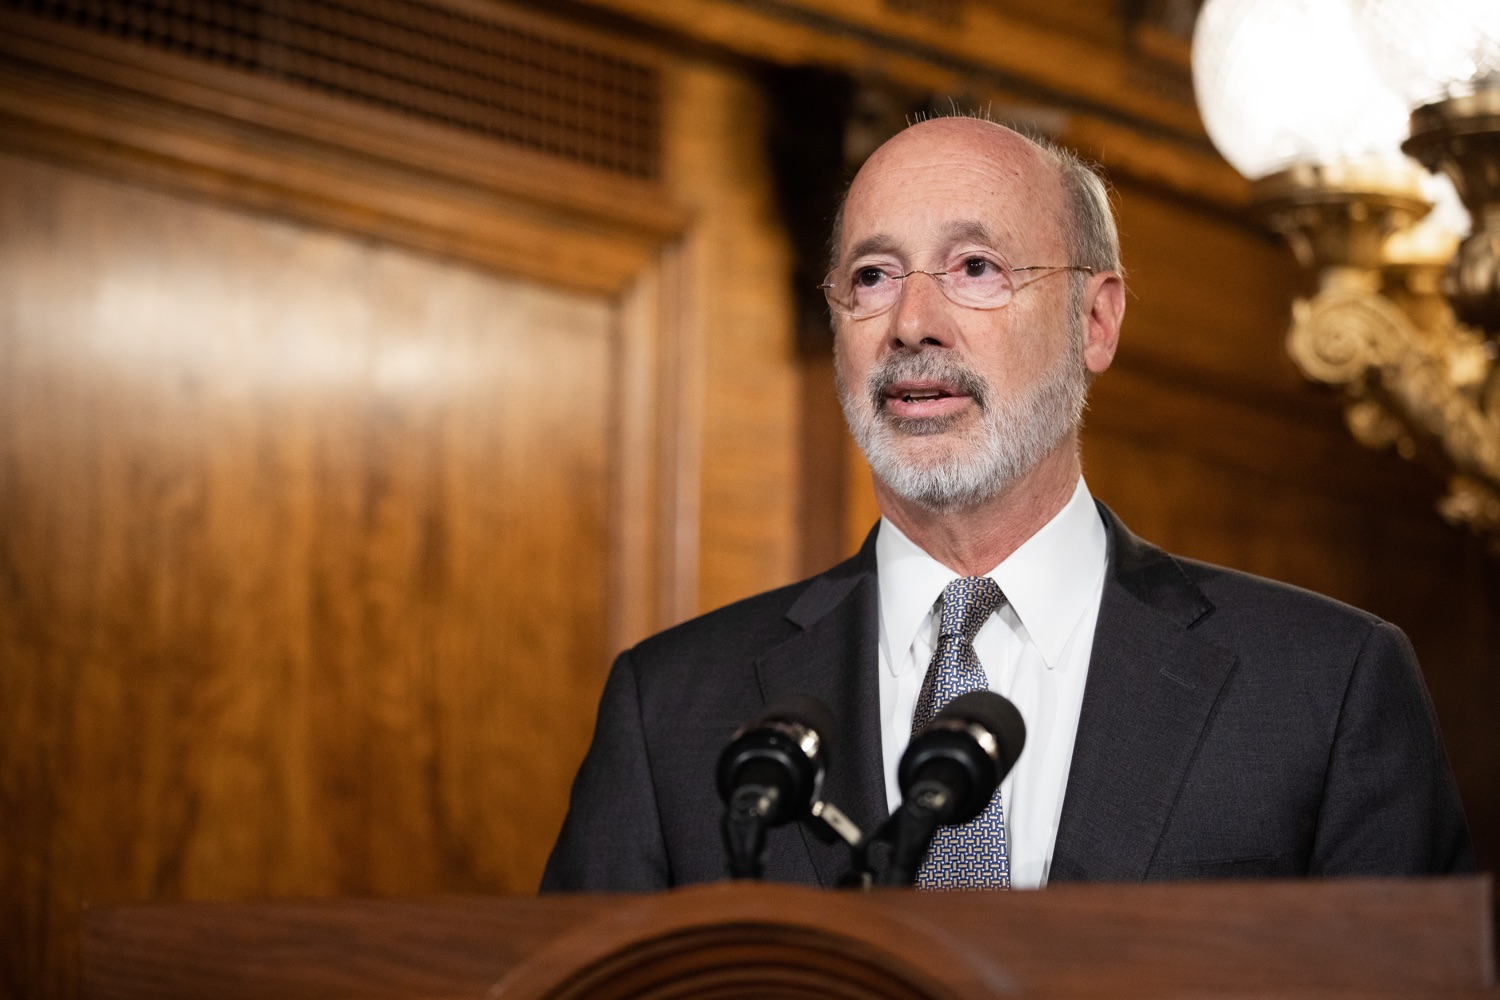 "<a href=""http://filesource.abacast.com/commonwealthofpa/photo/17554_gov_voter_reform_bill_dz_006.jpg"" target=""_blank"">⇣ Download Photo<br></a>Harrisburg, PA  Governor Tom Wolf speaks at the Election Reform Bill signing. Governor Wolf made voting more convenient and secure by signing Act 77 of 2019, the most significant improvement to Pennsylvanias elections in more than 80 years. The bipartisan compromise legislation takes effect for the April 2020 primary election and makes Pennsylvania a national leader with voter-friendly election reforms."